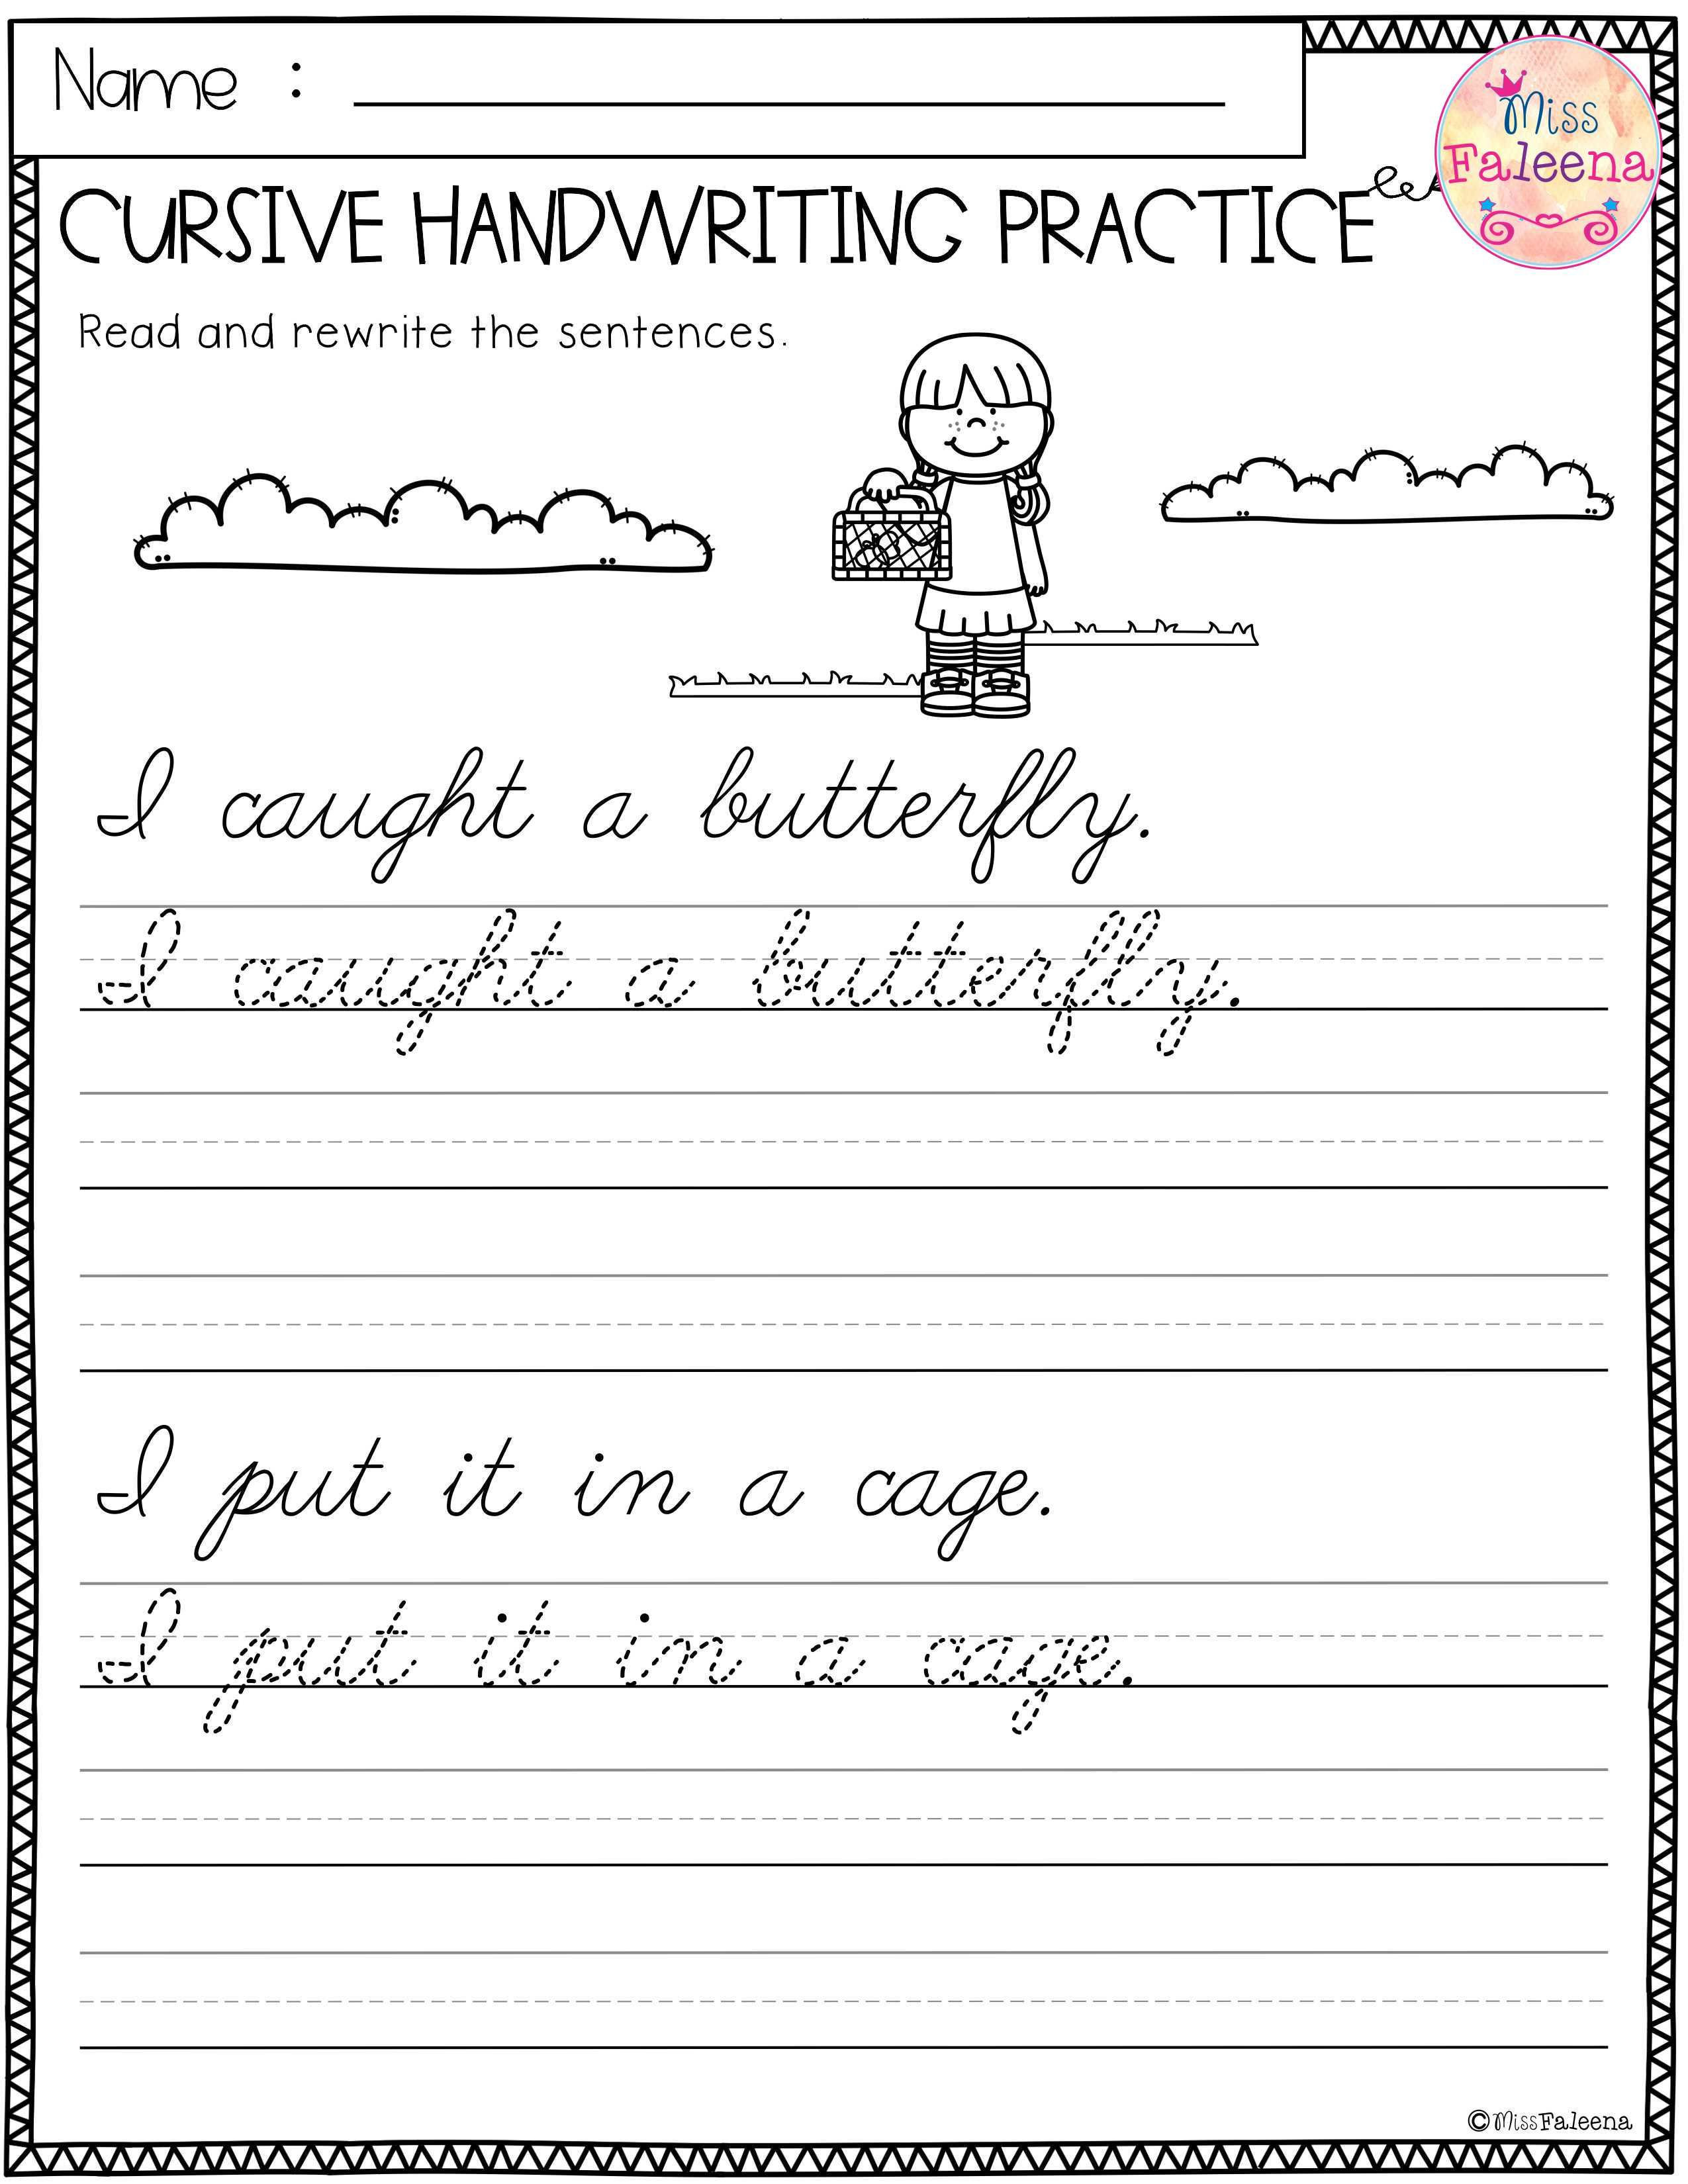 Writing Sheets for 1st Graders Spring Cursive Handwriting Practice